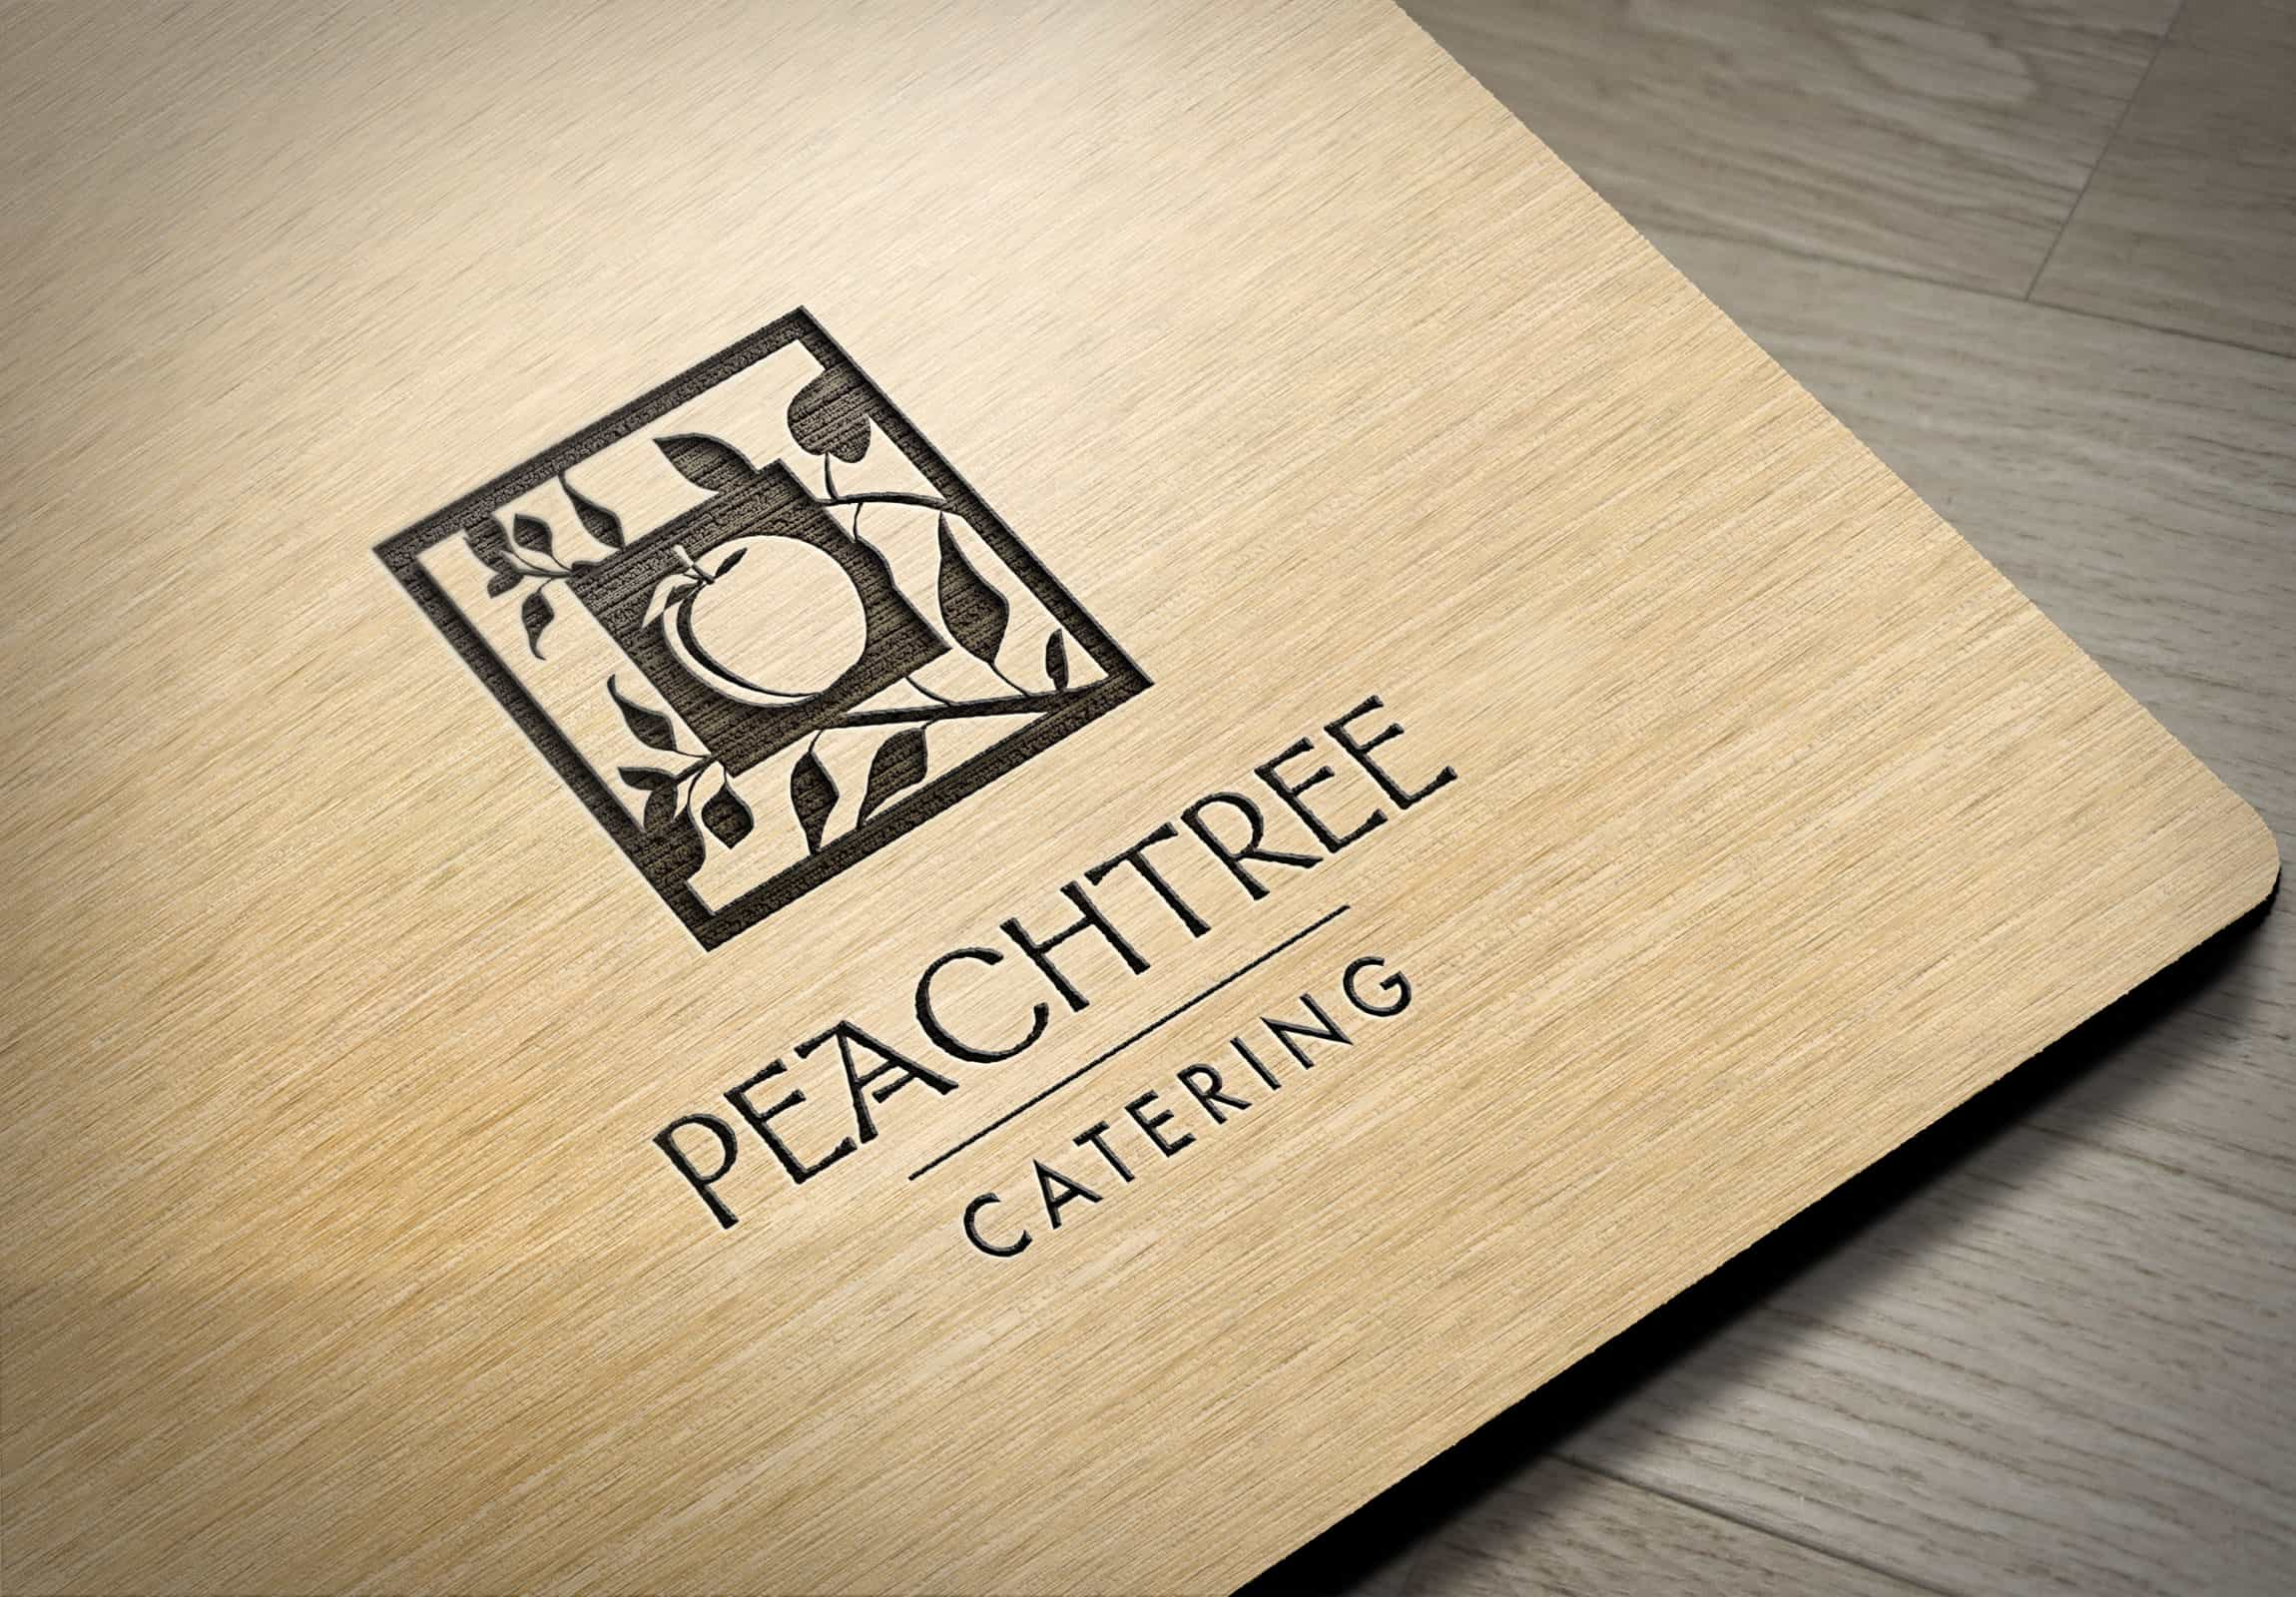 Peachtree Catering - Branding & Marketing